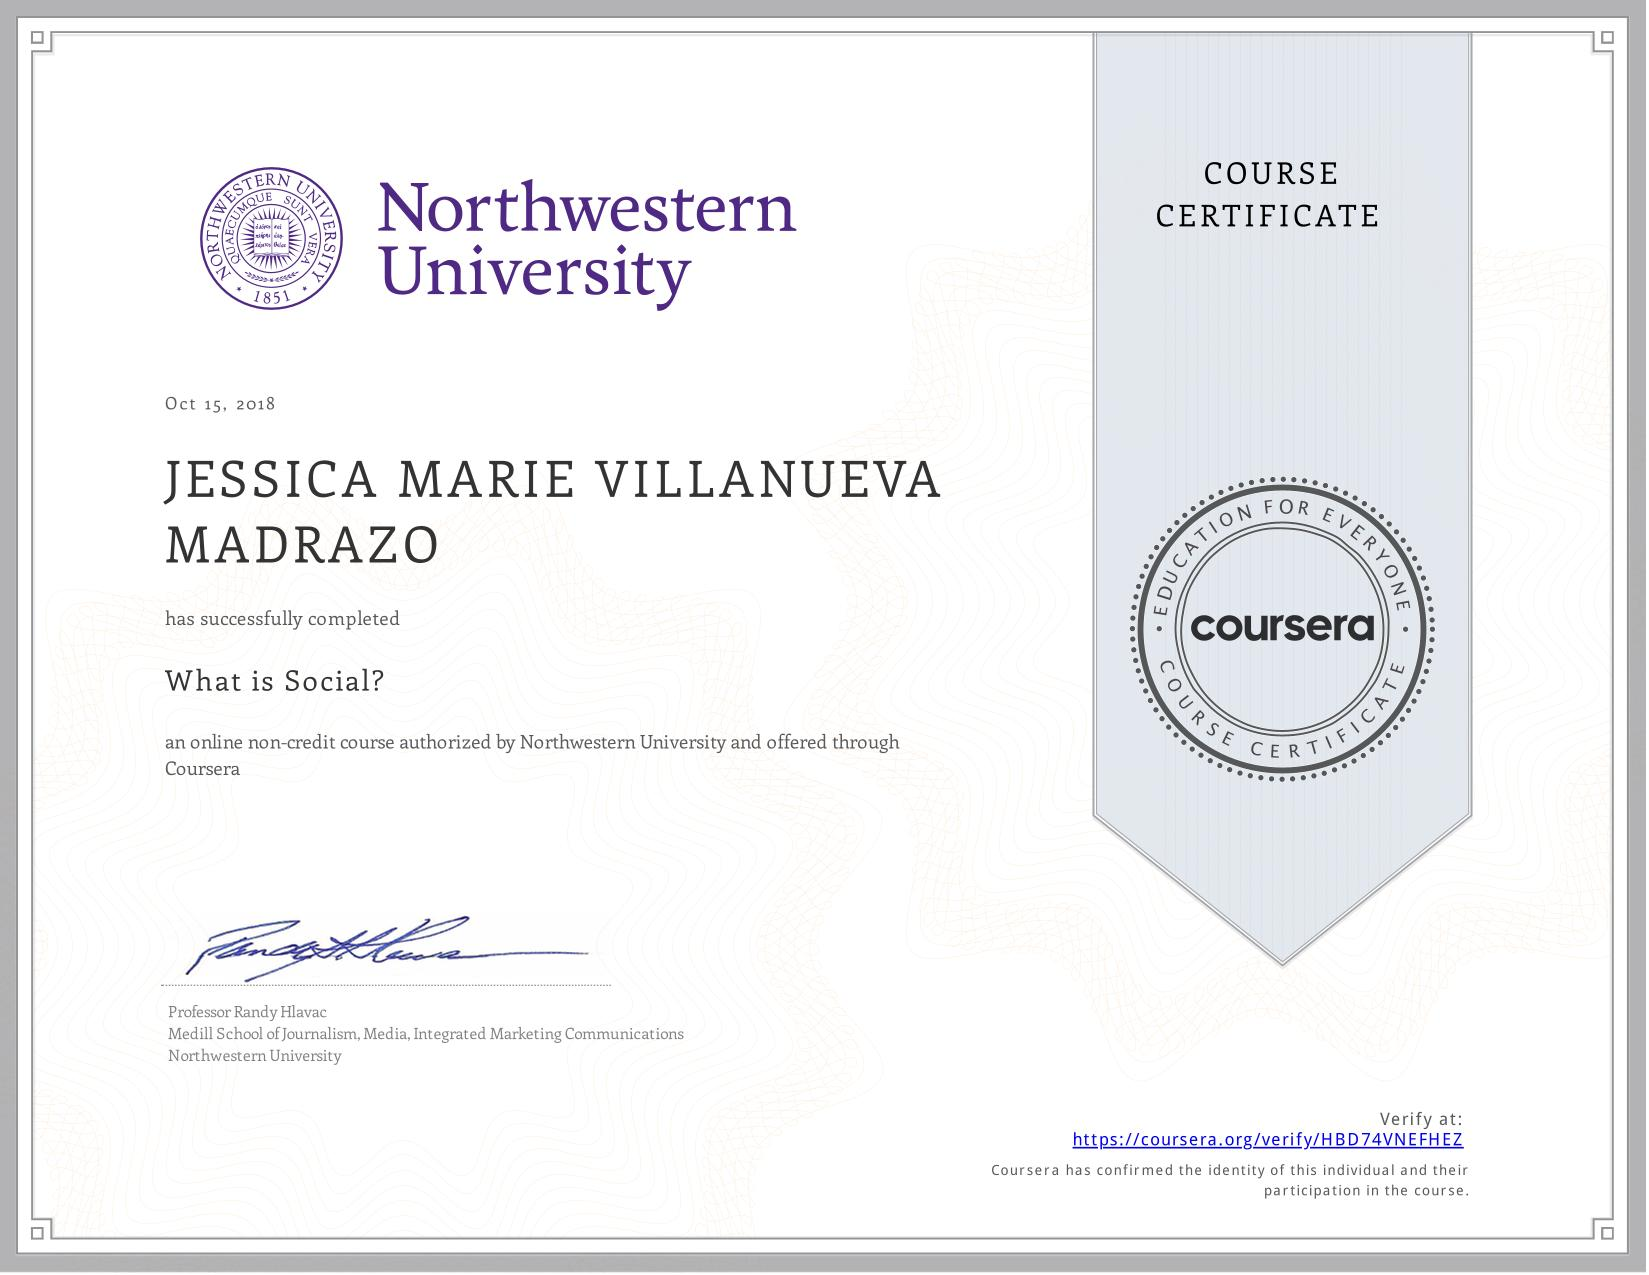 View certificate for JESSICA MARIE VILLANUEVA  MADRAZO, What is Social?, an online non-credit course authorized by Northwestern University and offered through Coursera